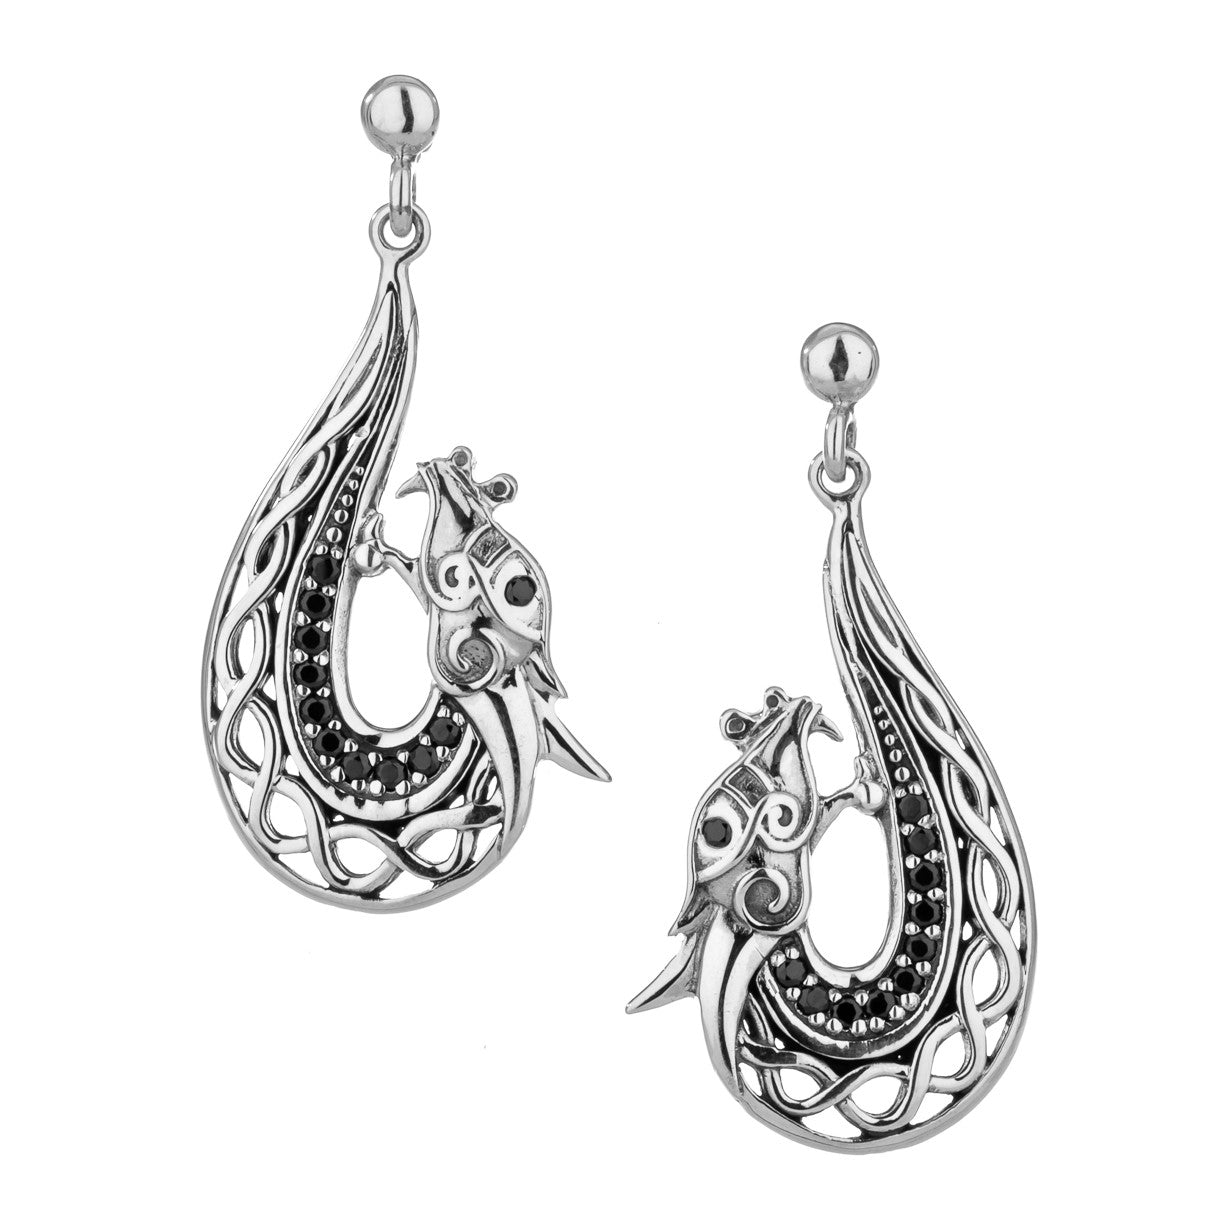 Norse Forge Dragon Earrings - Black Cubic Zirconia